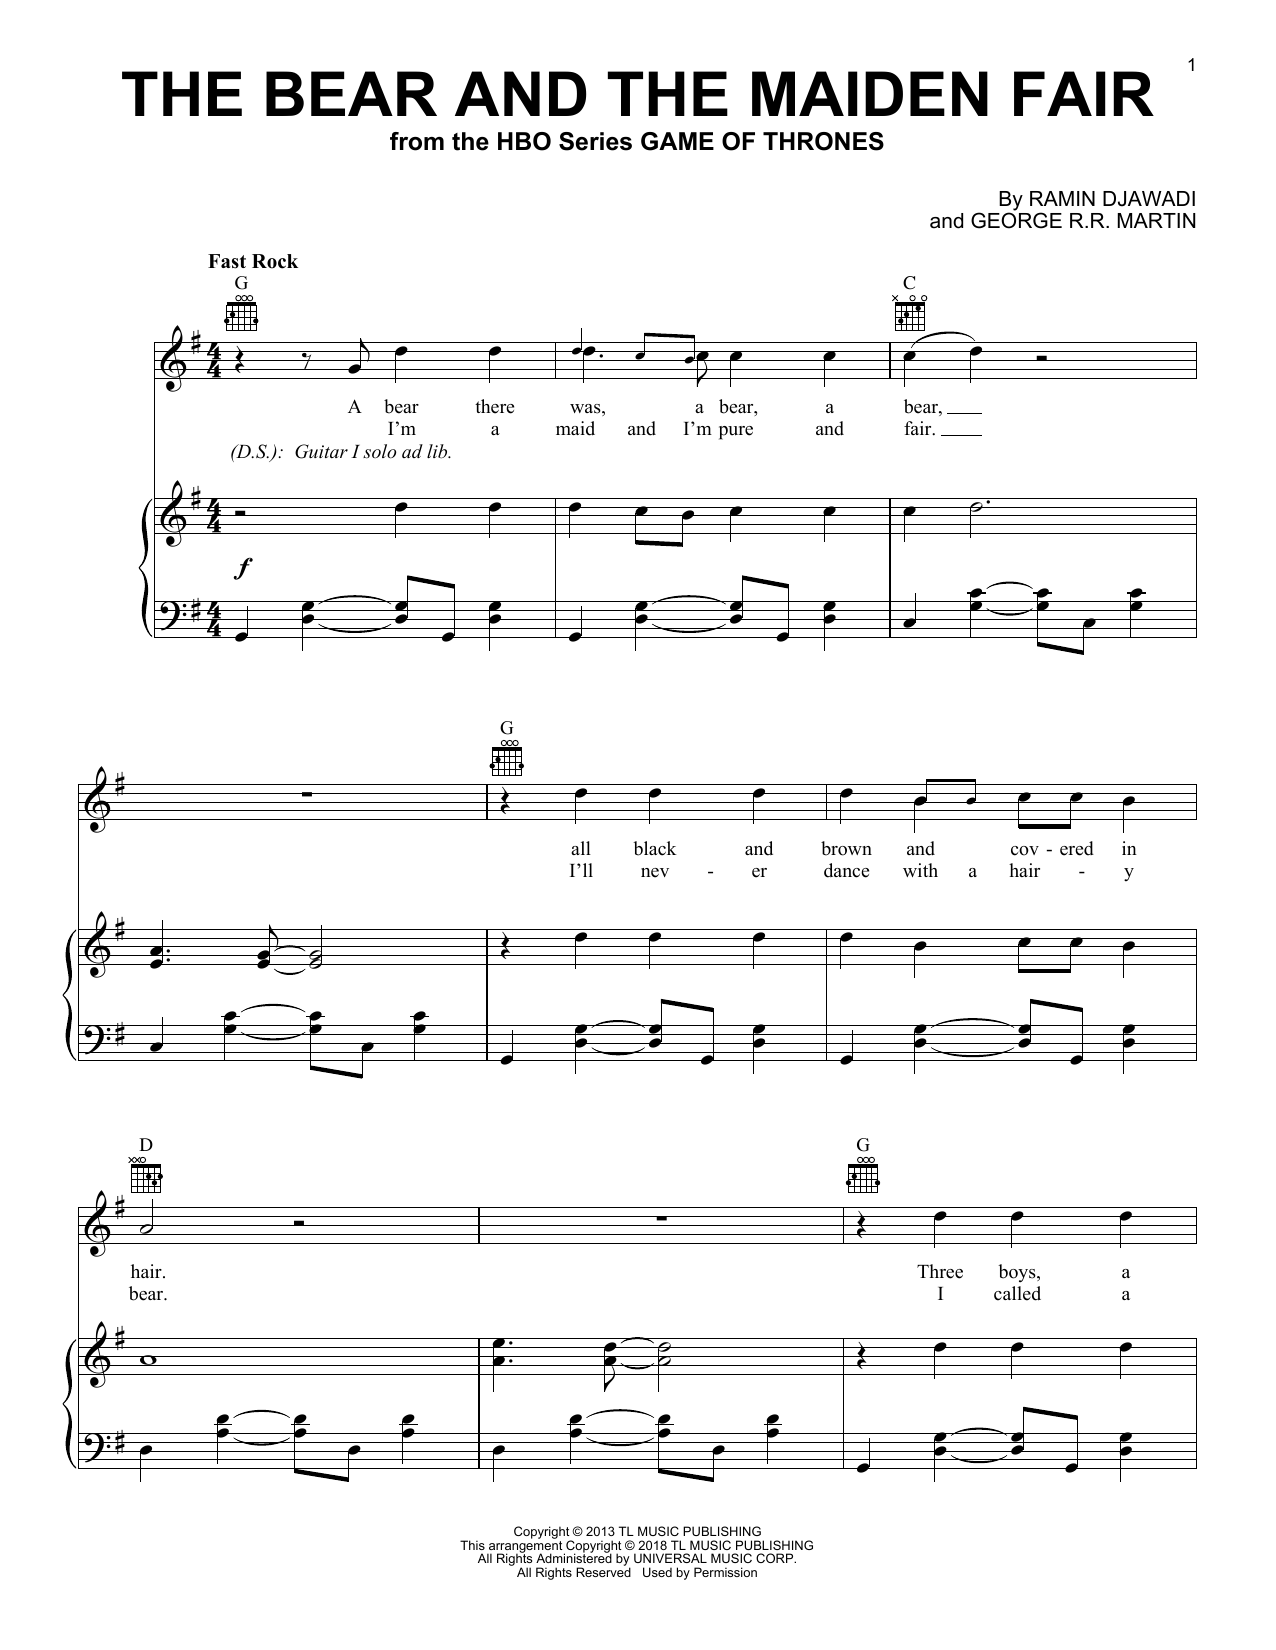 Ramin Djawadi The Bear And The Maiden Fair (from Game of Thrones) sheet music notes and chords. Download Printable PDF.